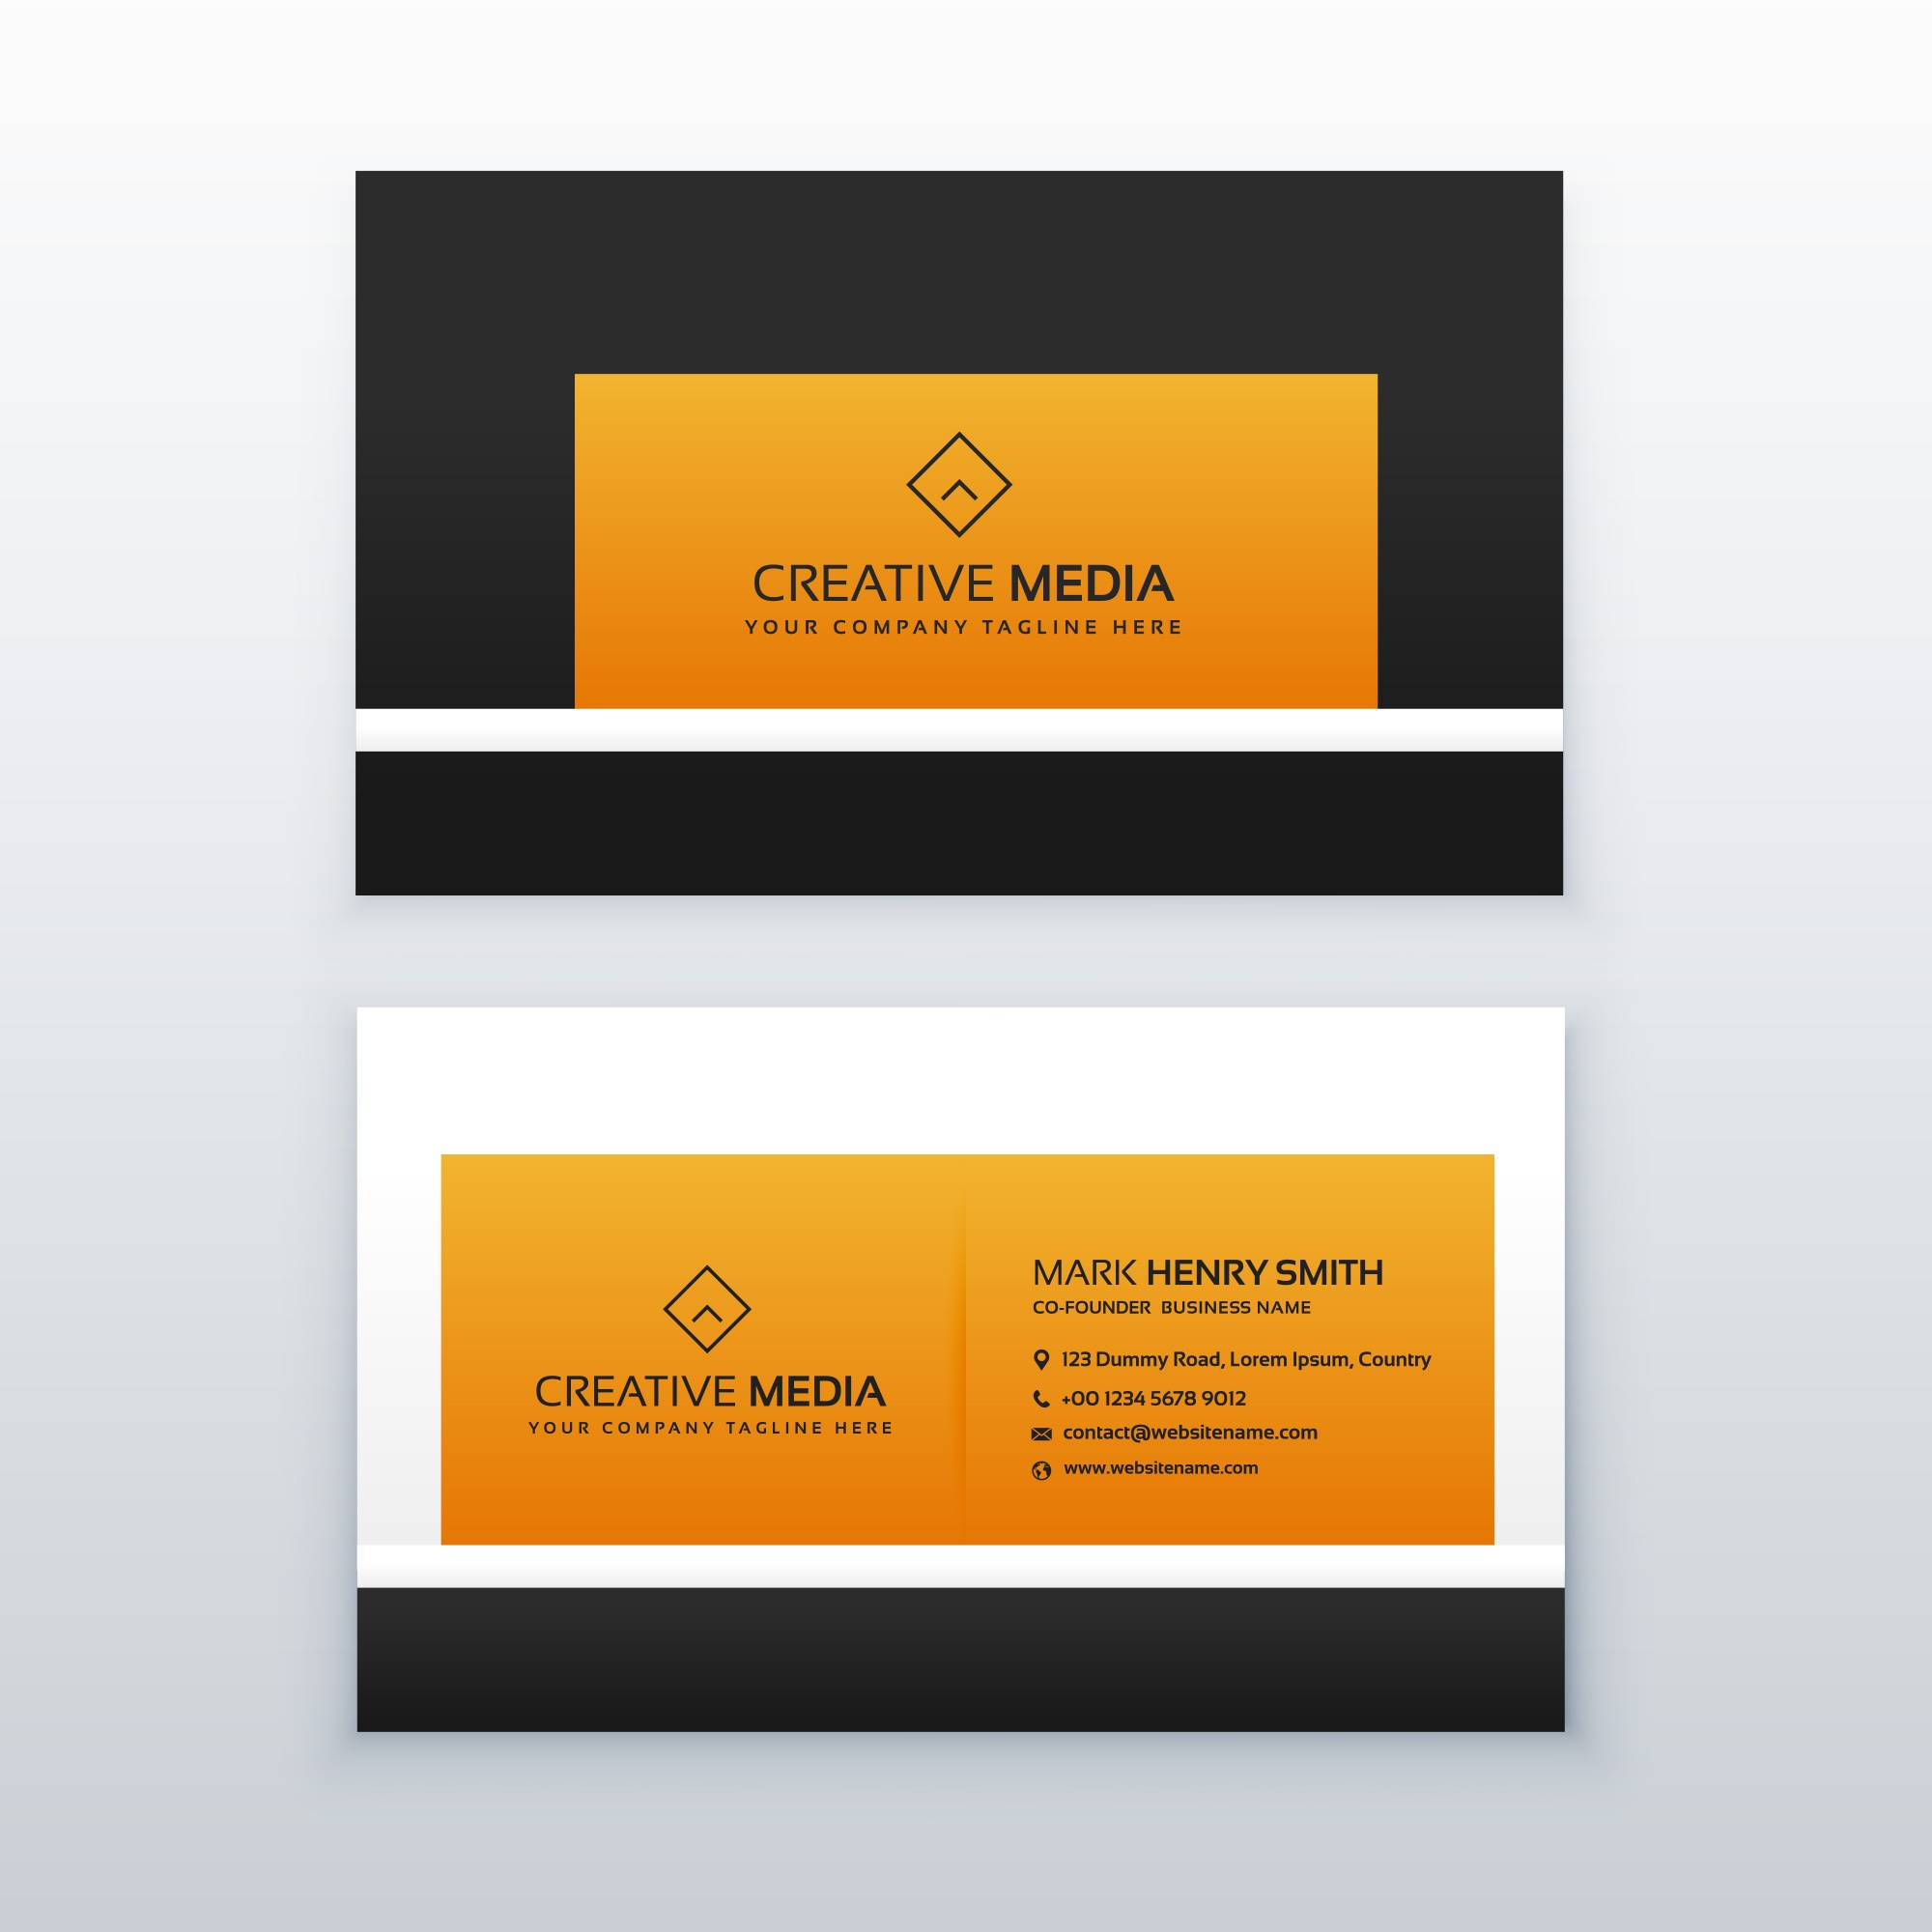 Company business card design in yellow and black